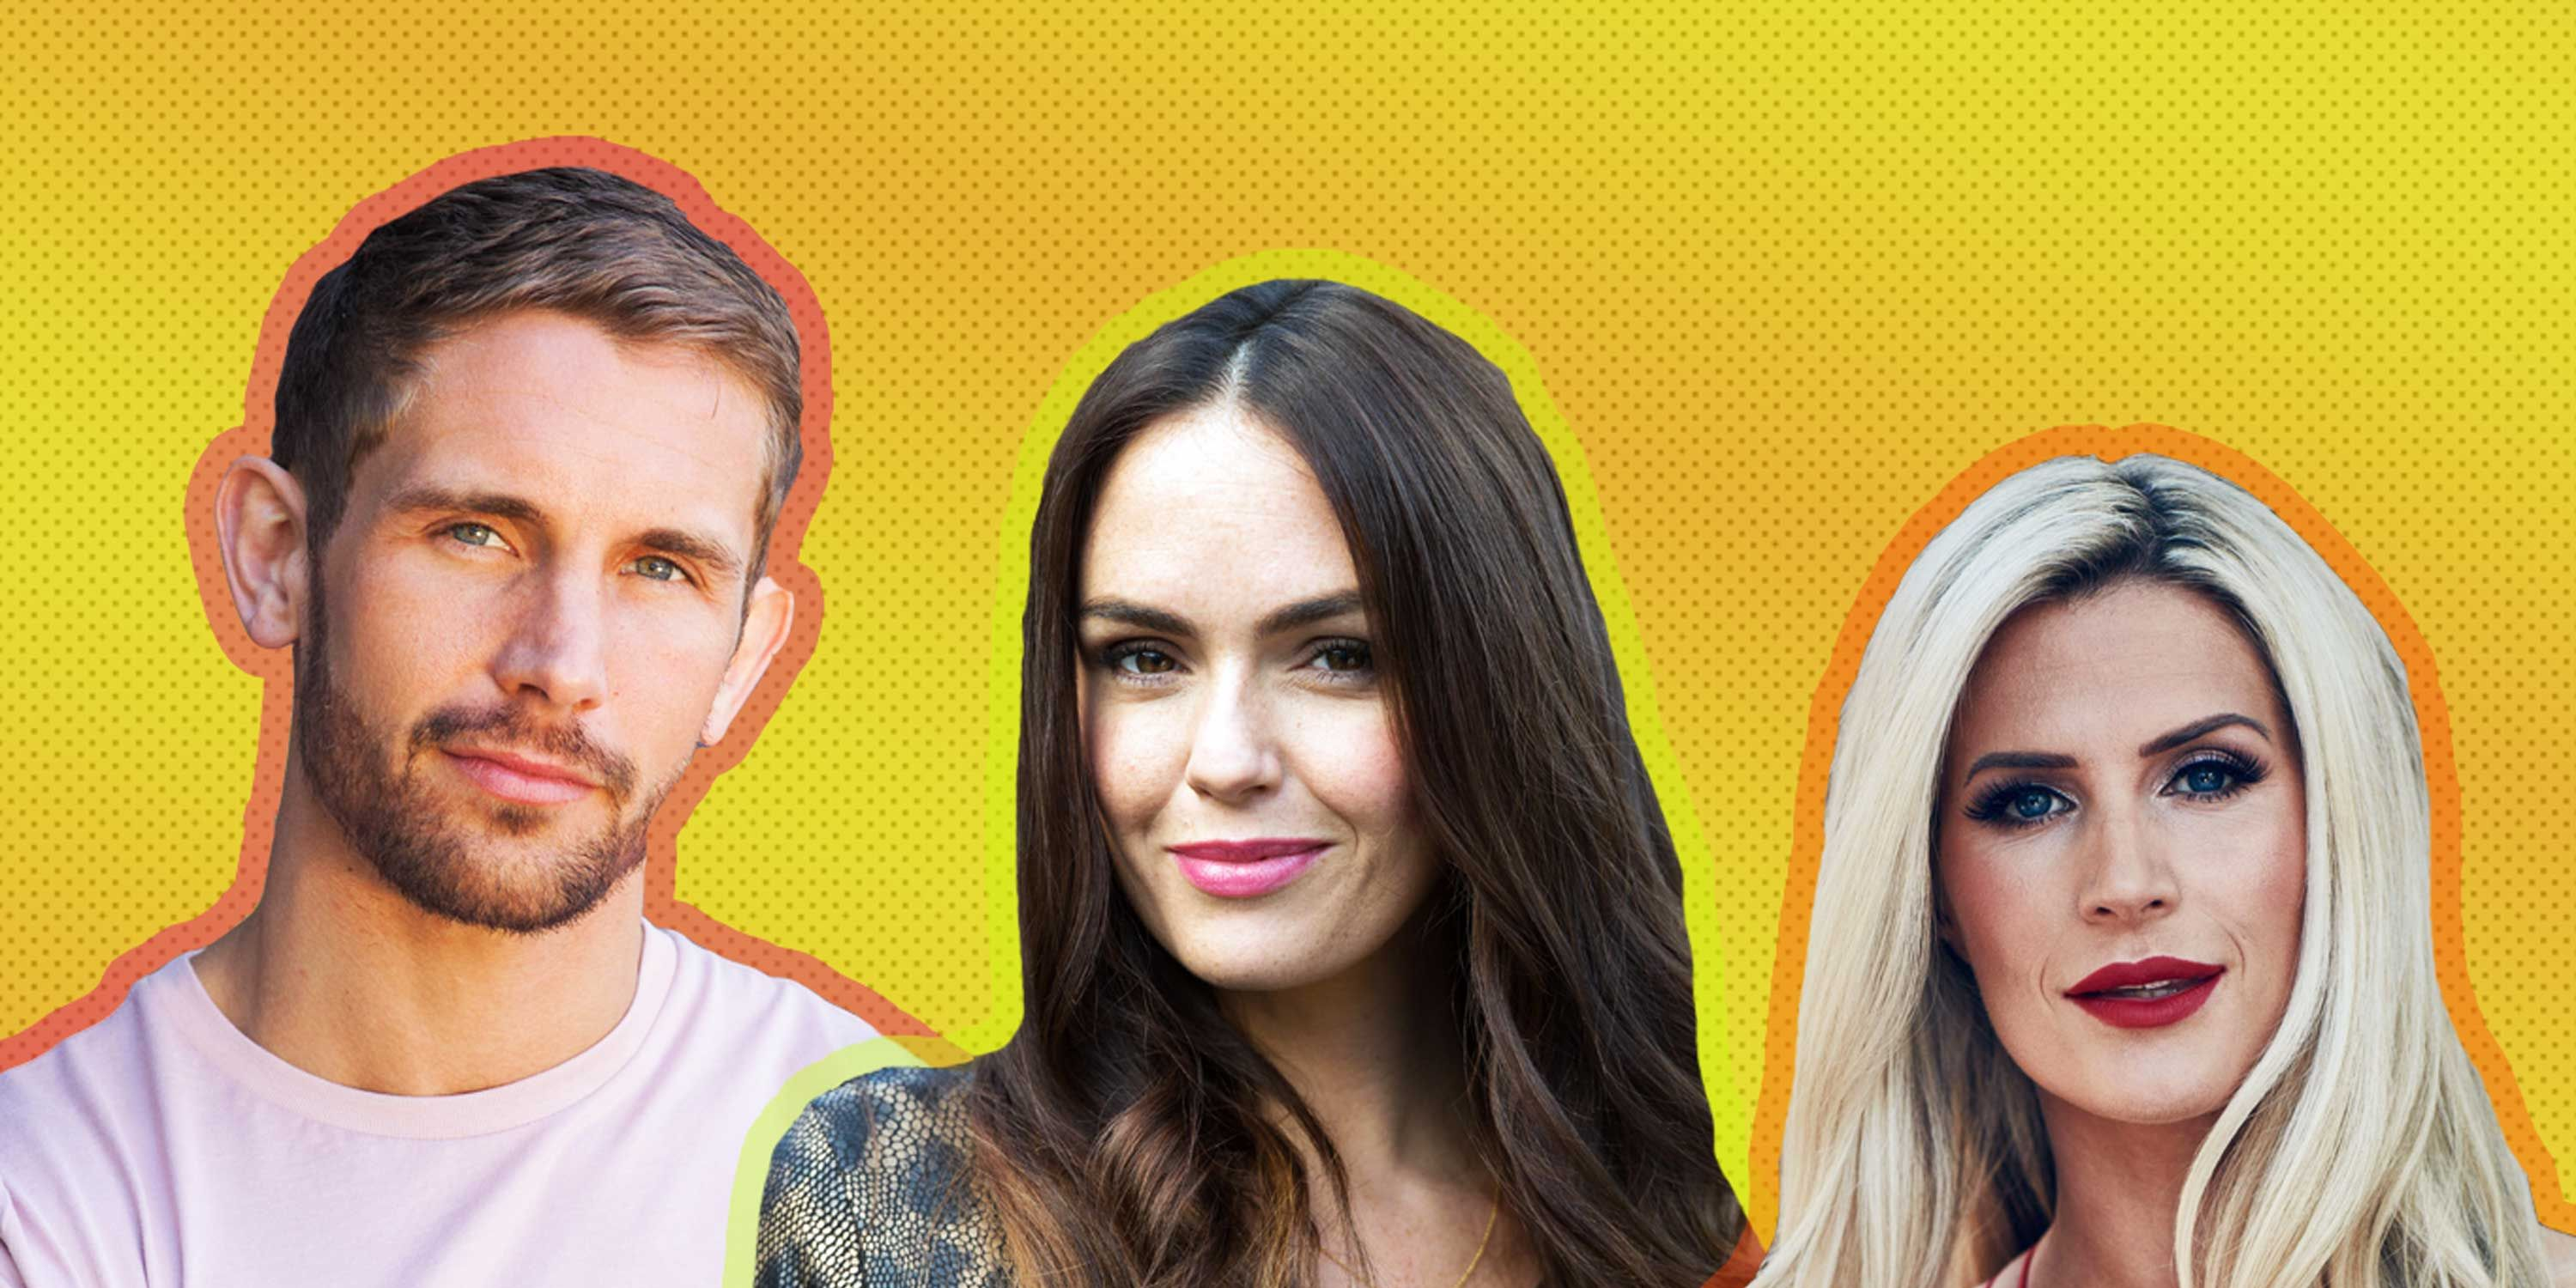 Mandy Richardson, Mercedes McQueen and Brody Hudson from Hollyoaks, October 2018